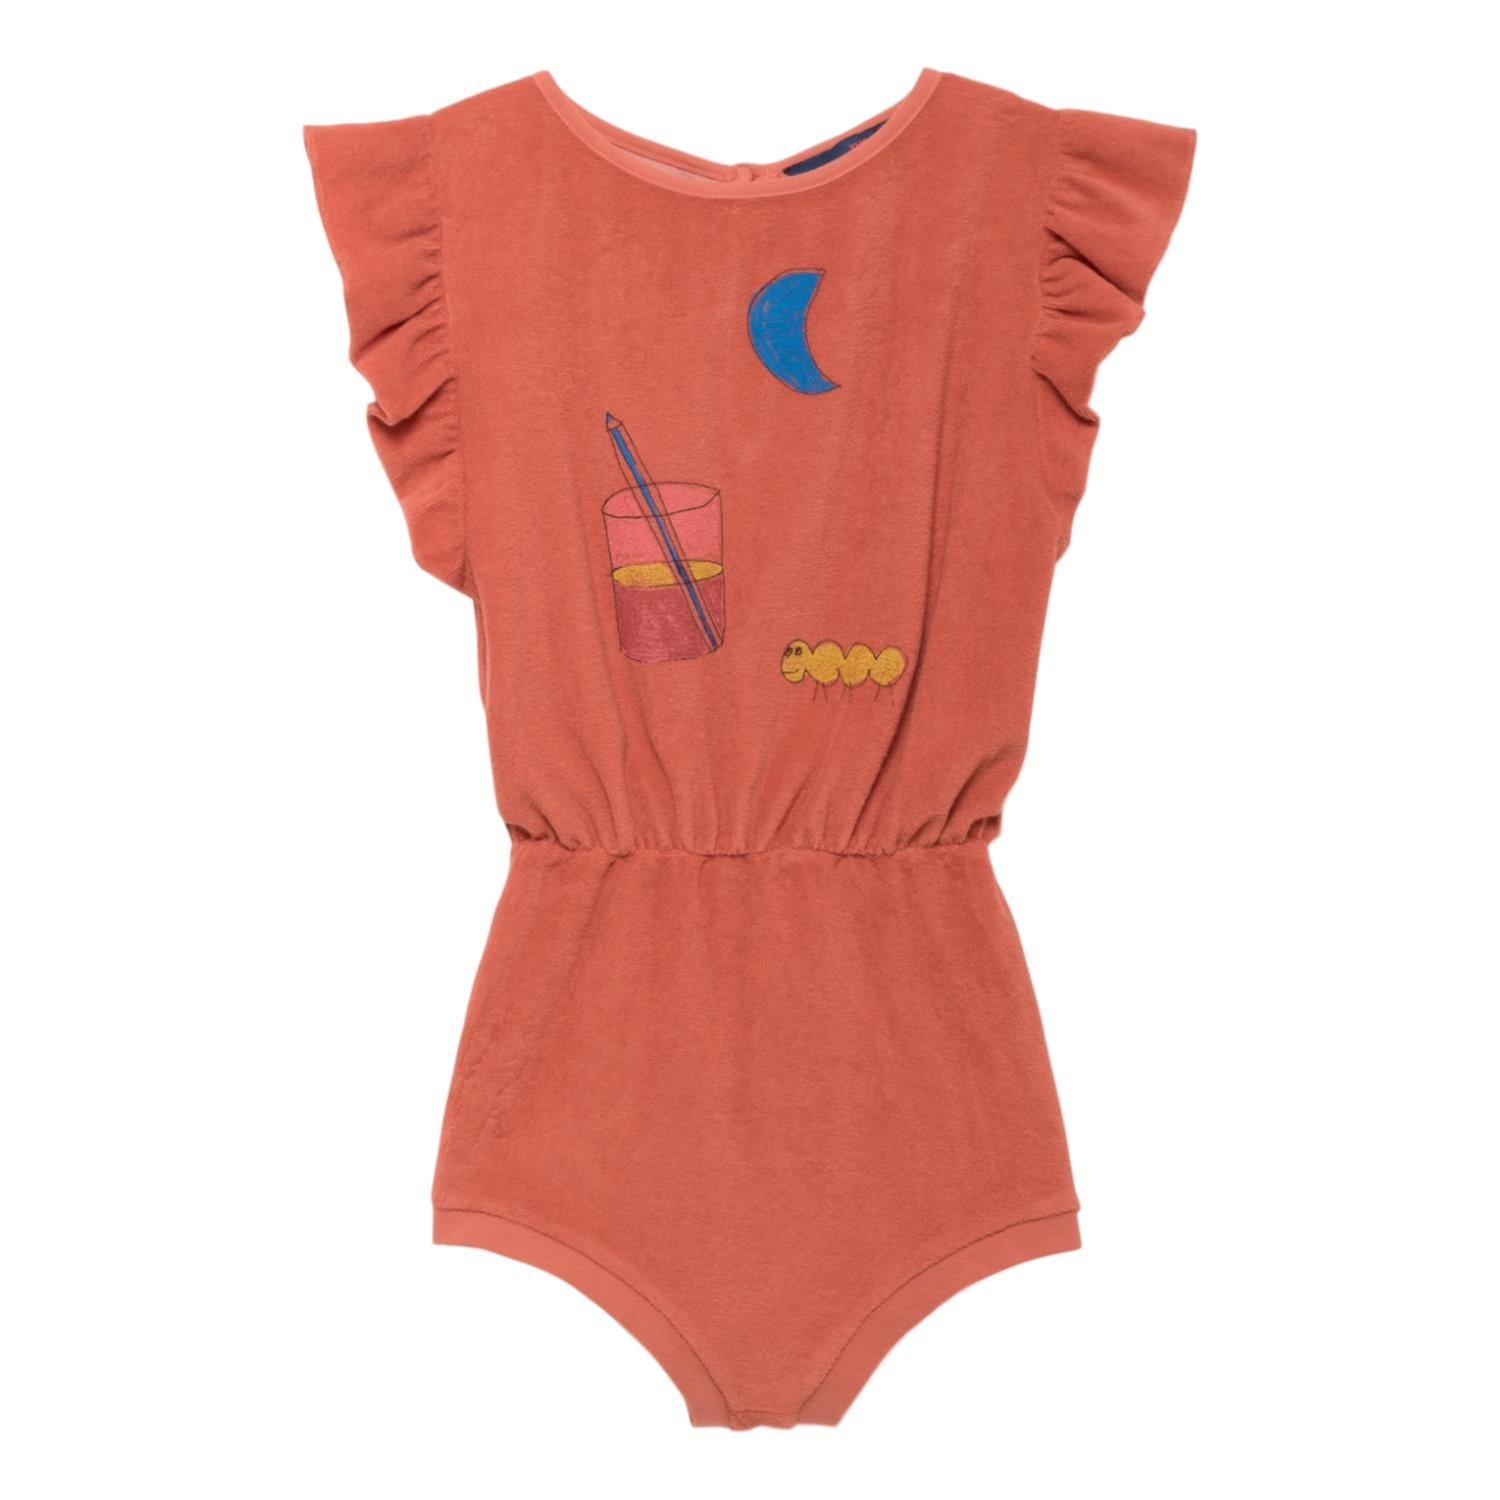 THE ANIMALS OBSERVATORY - Red Glass Koala Kids Suit